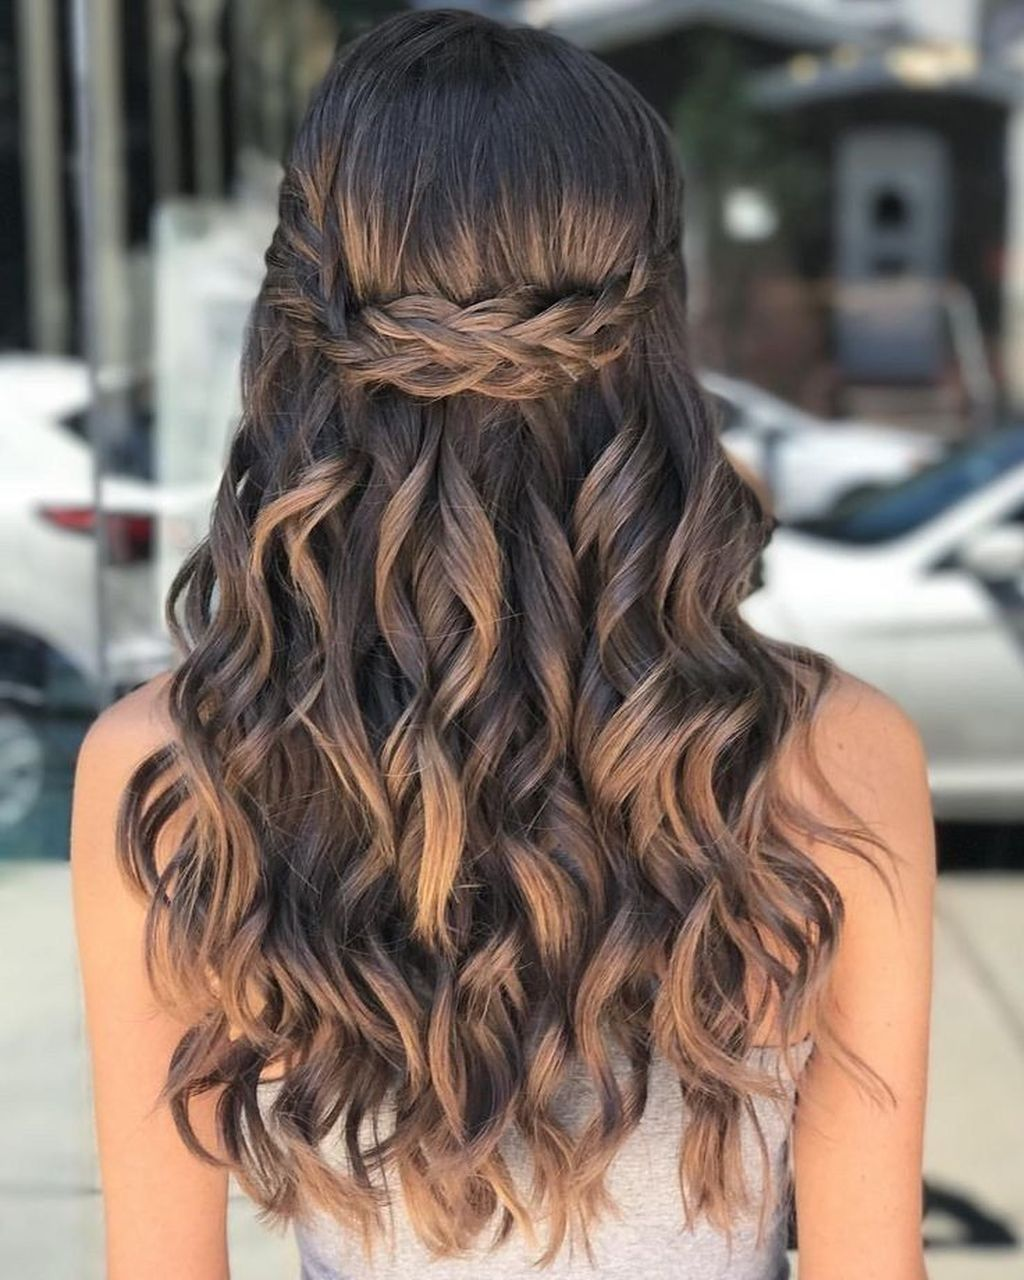 pretty prom hairstyle ideas